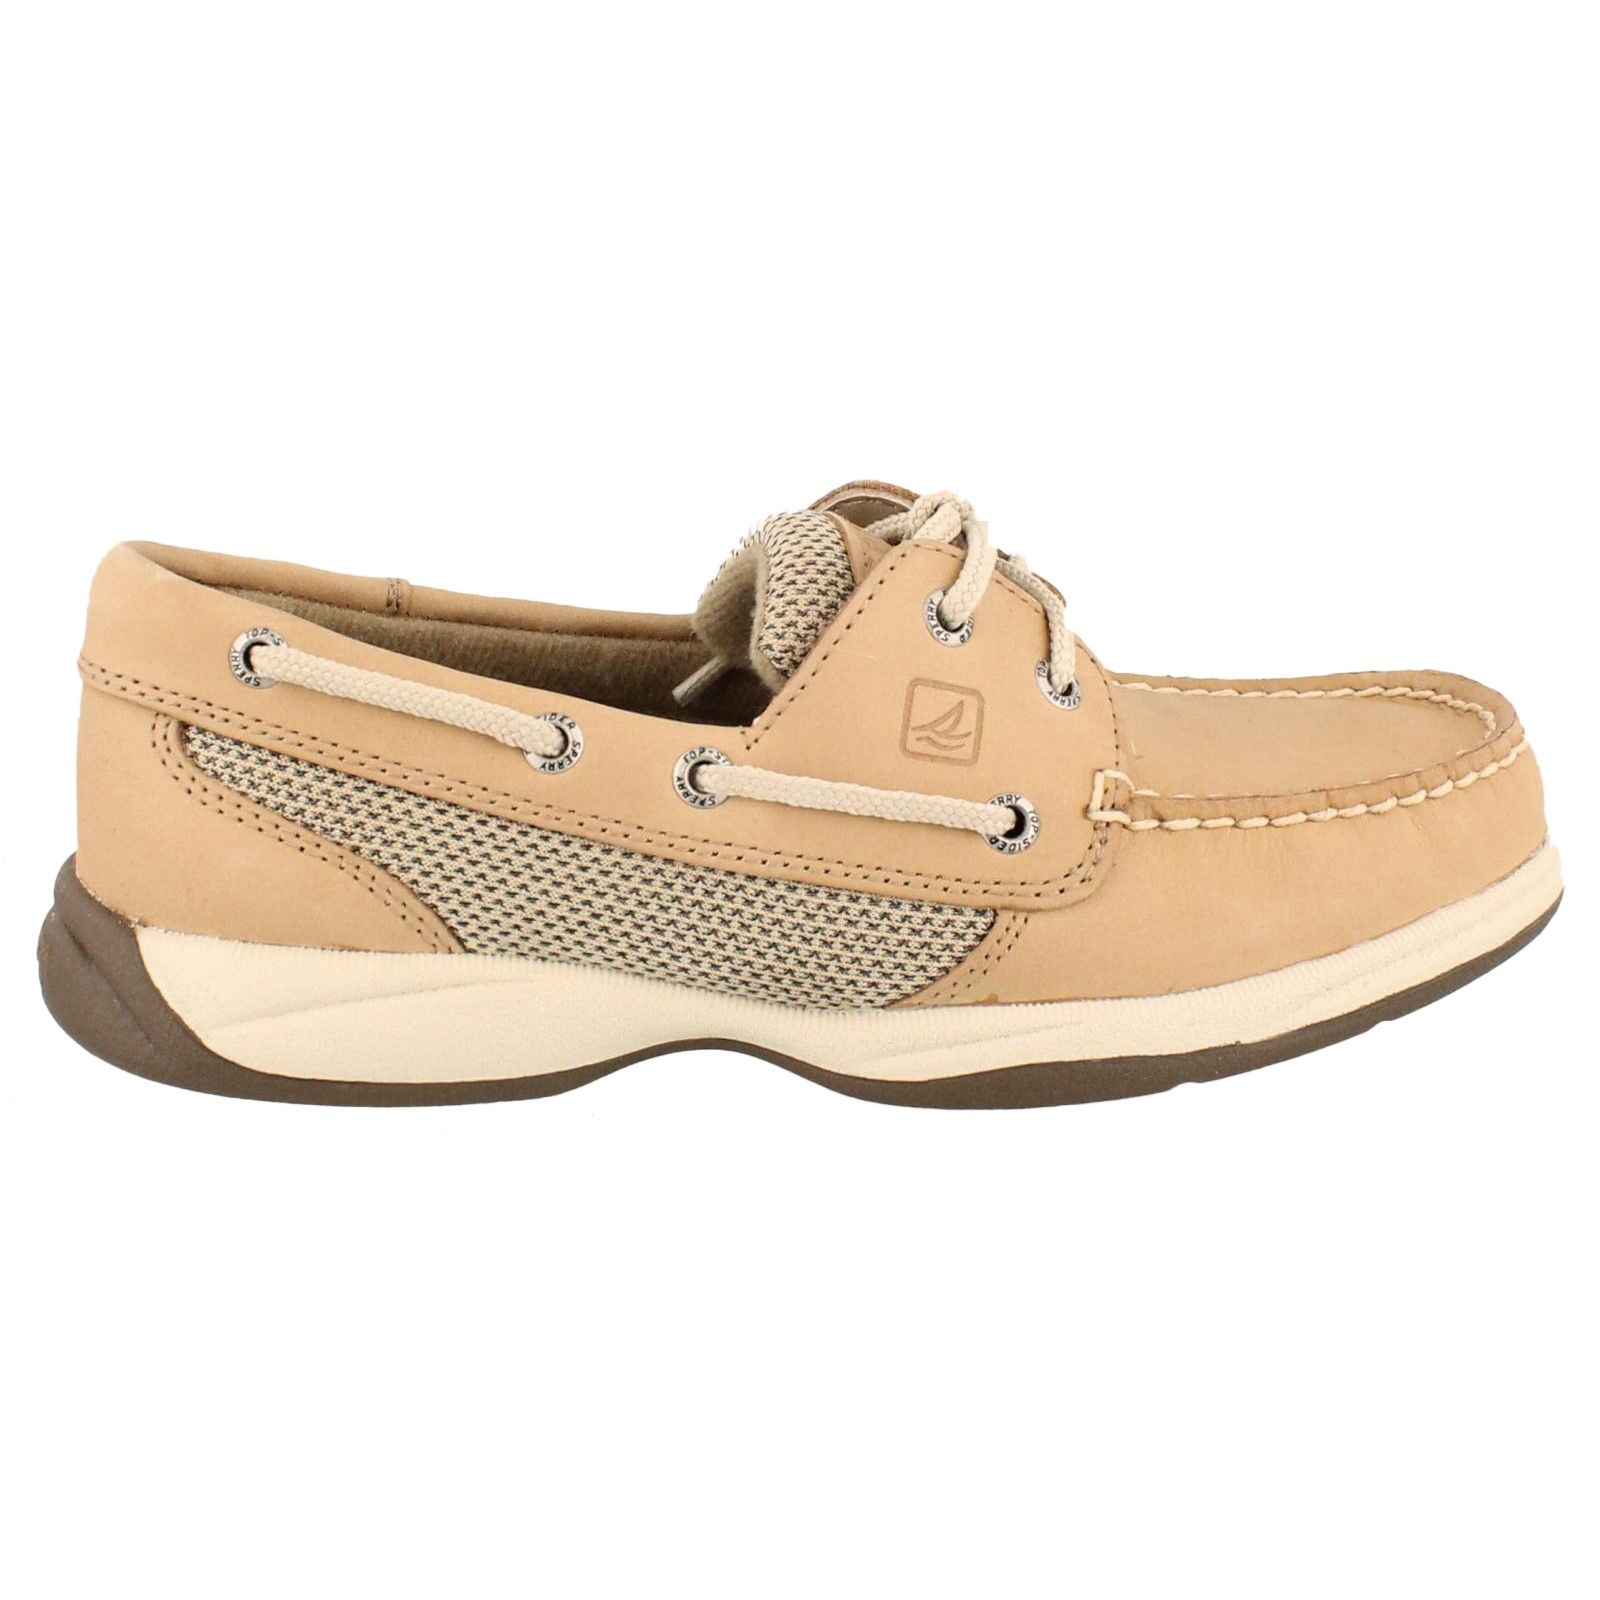 Women's Sperry, Intrepid Boat Shoe